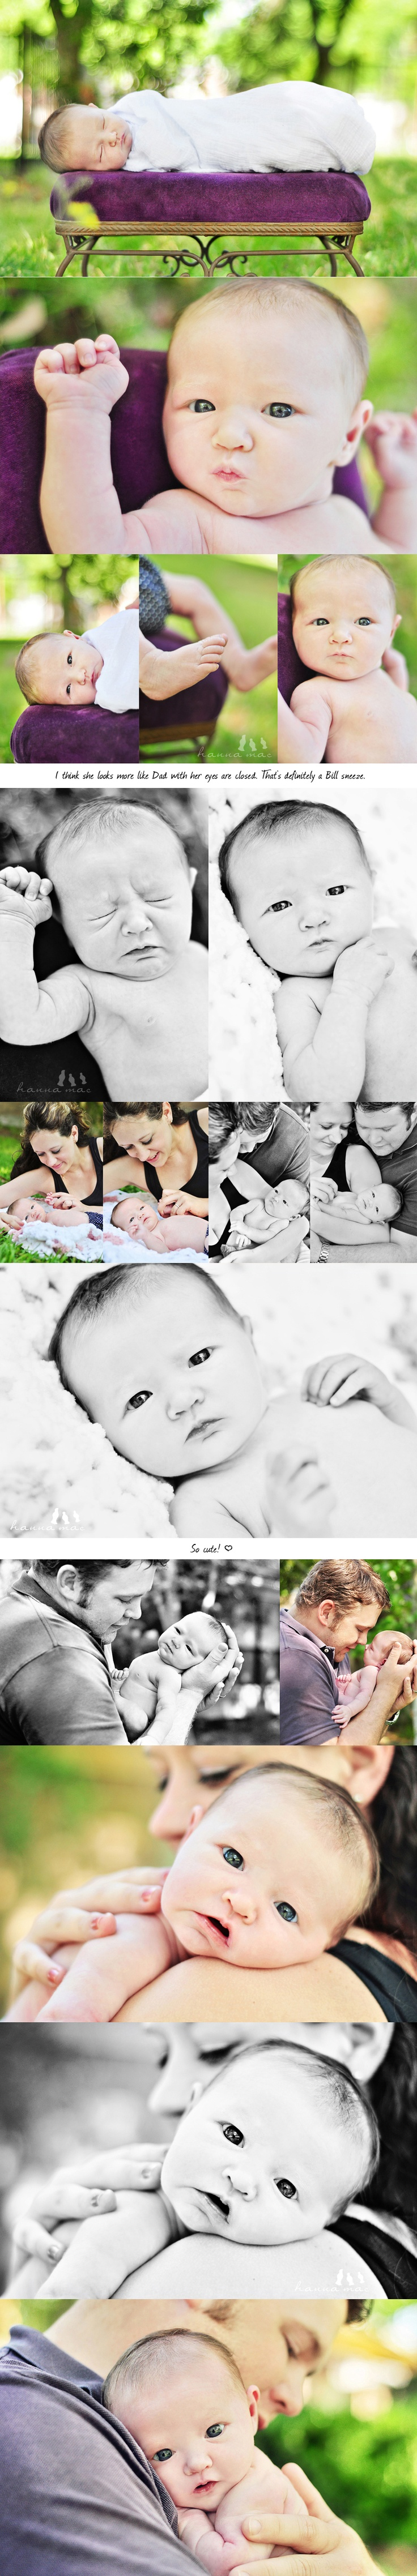 handbags for sale online baby photography  Photo Ideas